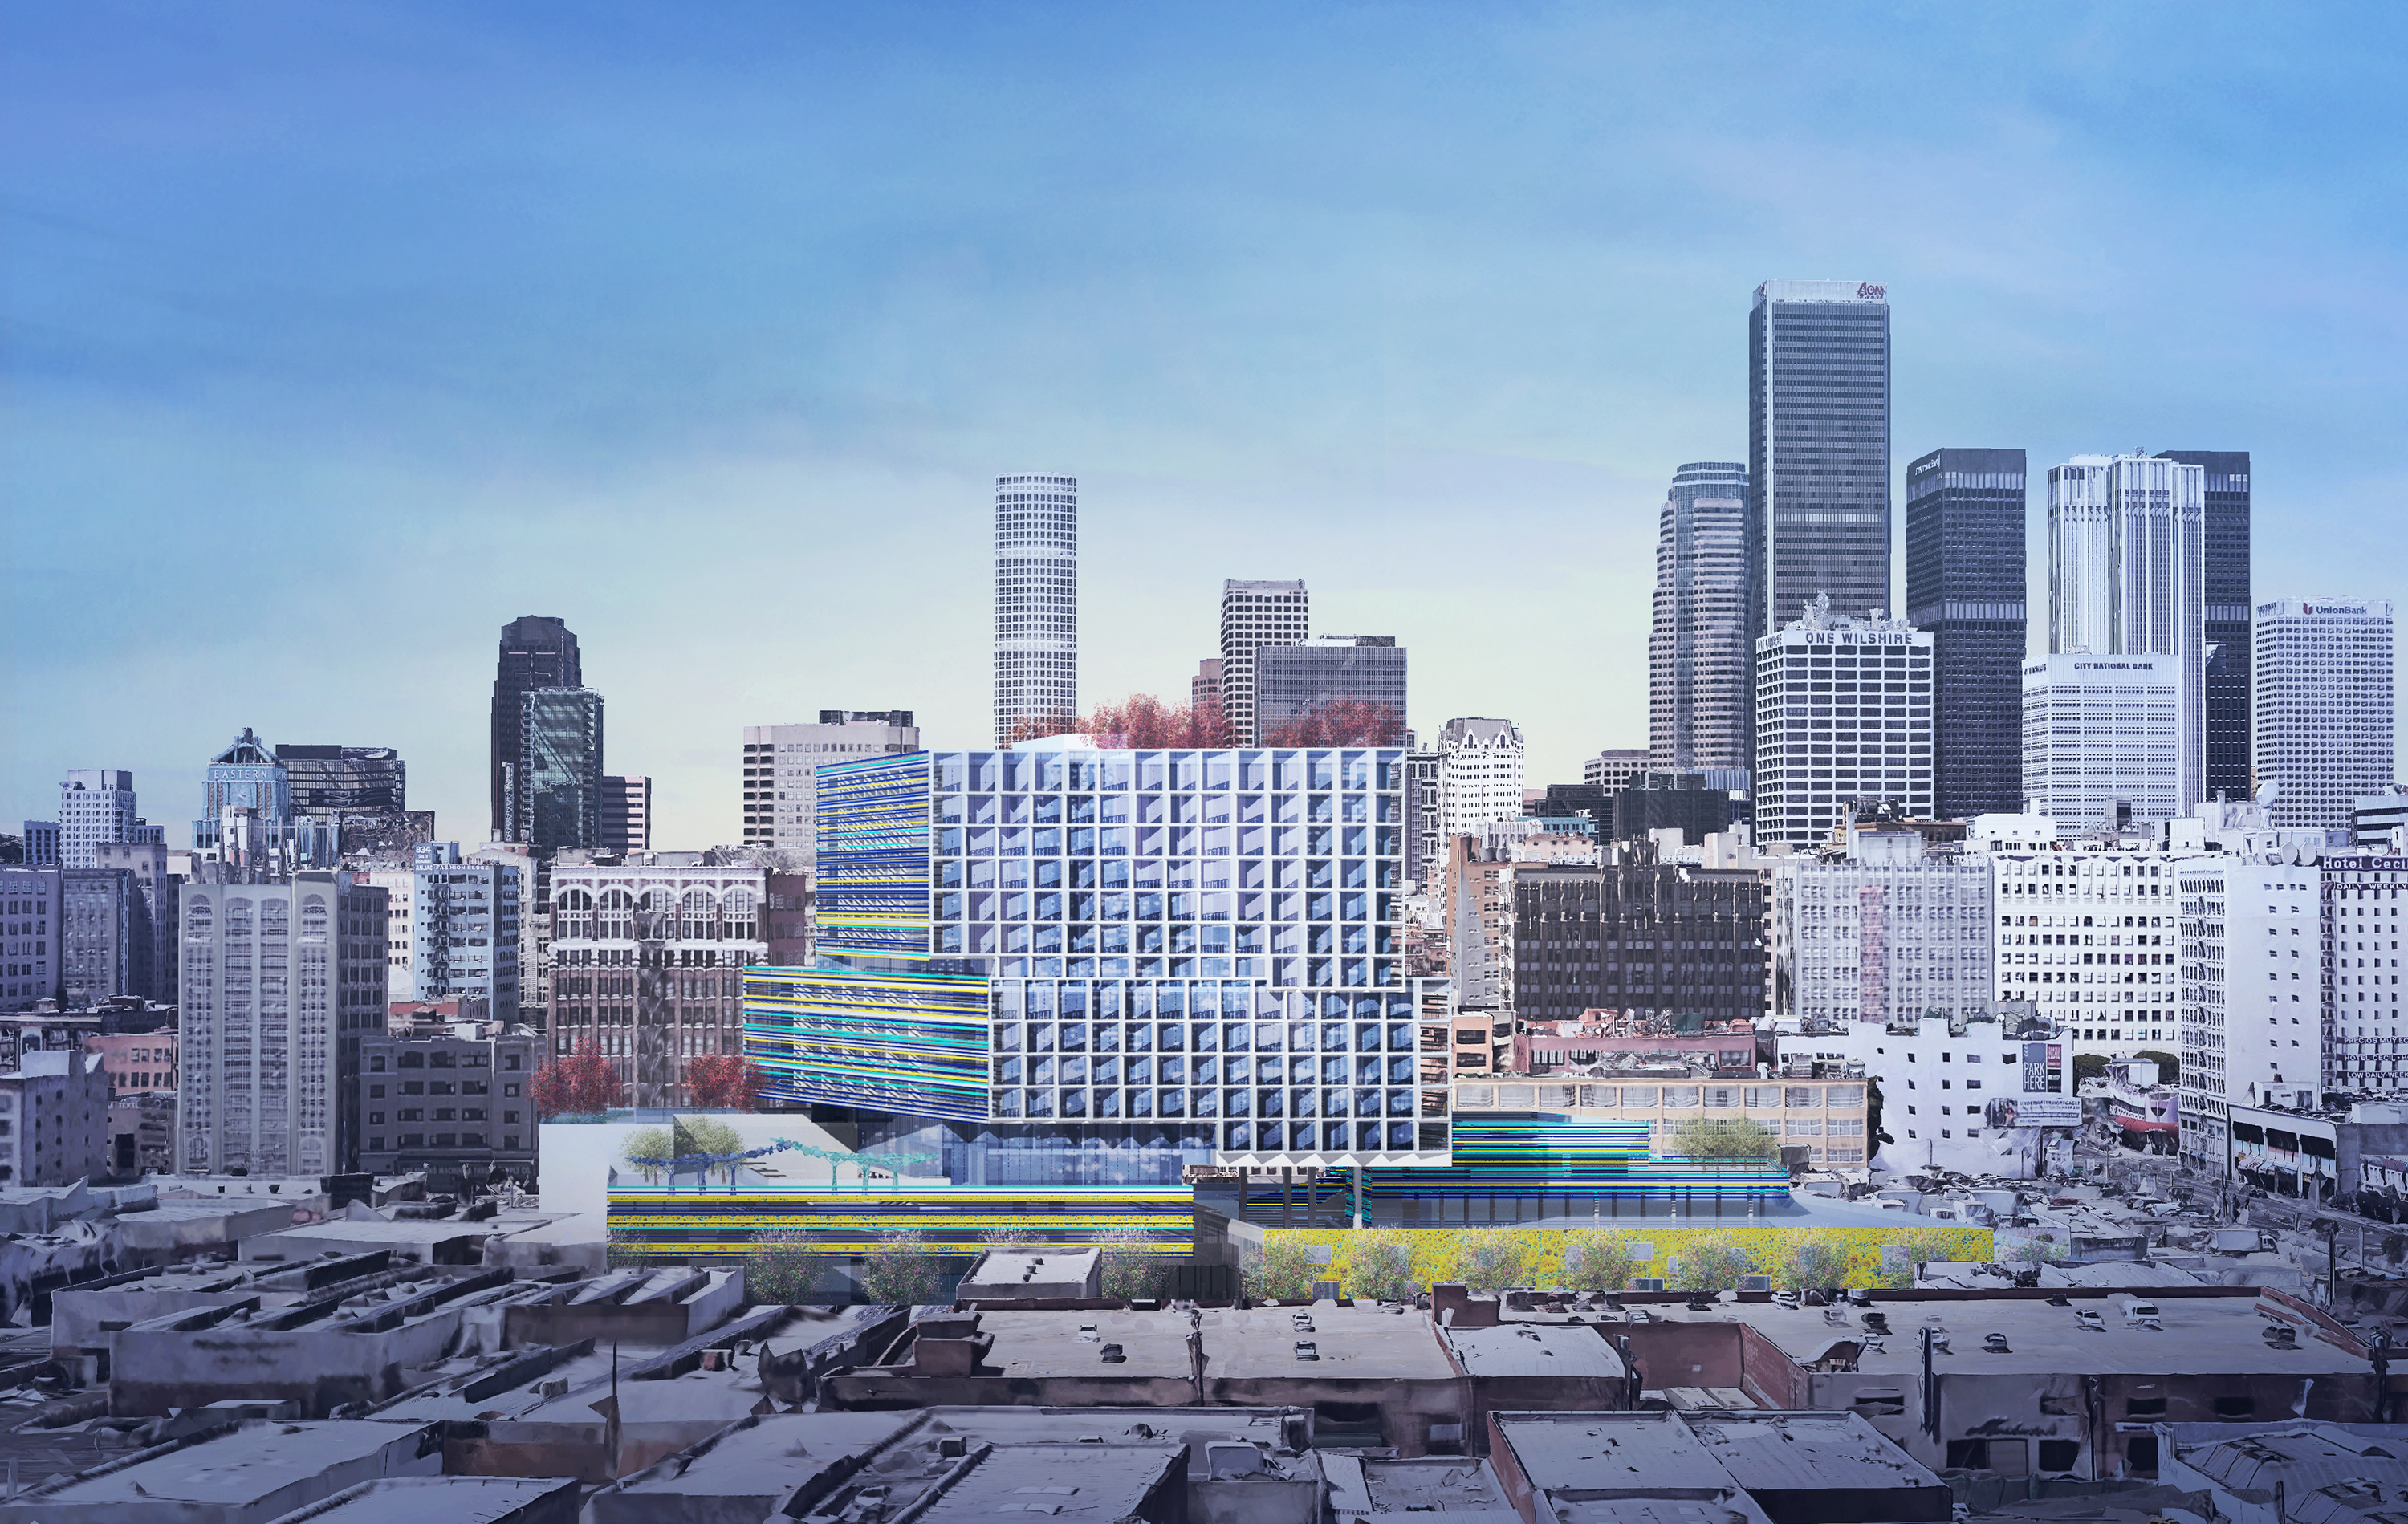 A rendering of the new development, which rises to 15 stories, against the backdrop of the Downtown LA skyline.